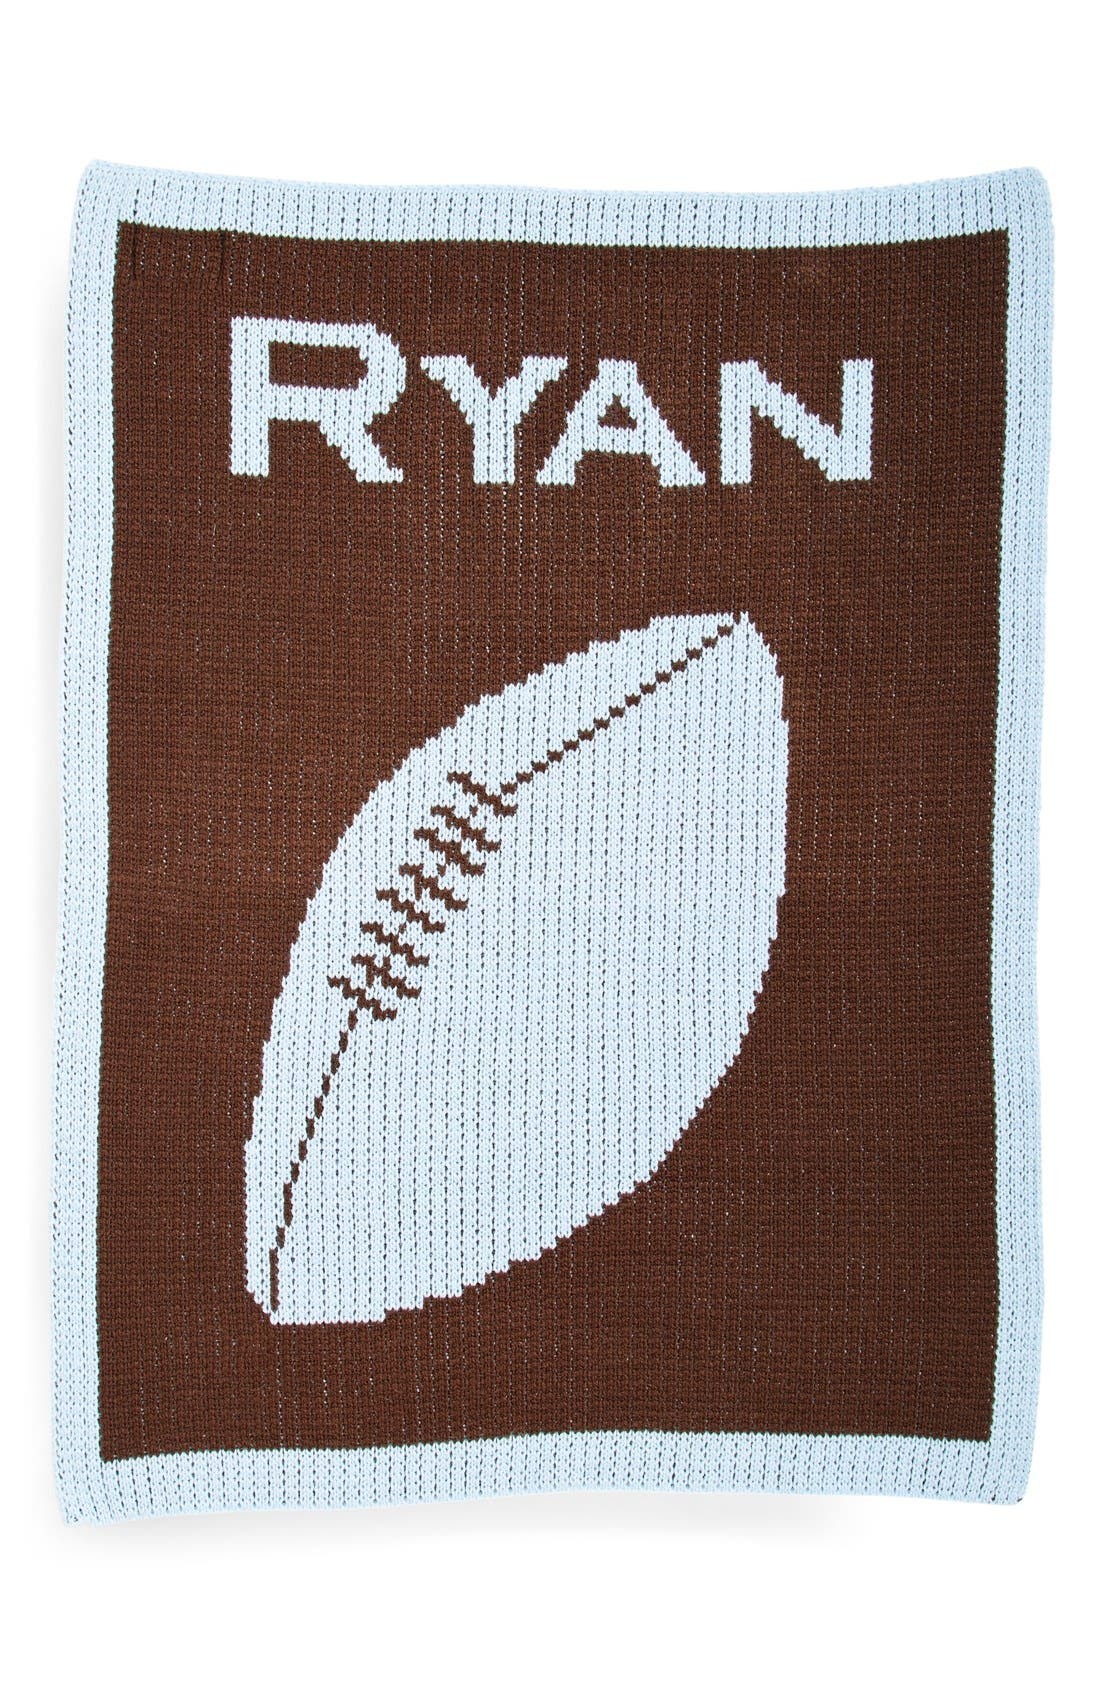 Main Image - Butterscotch Blankees 'Football' Personalized Blanket